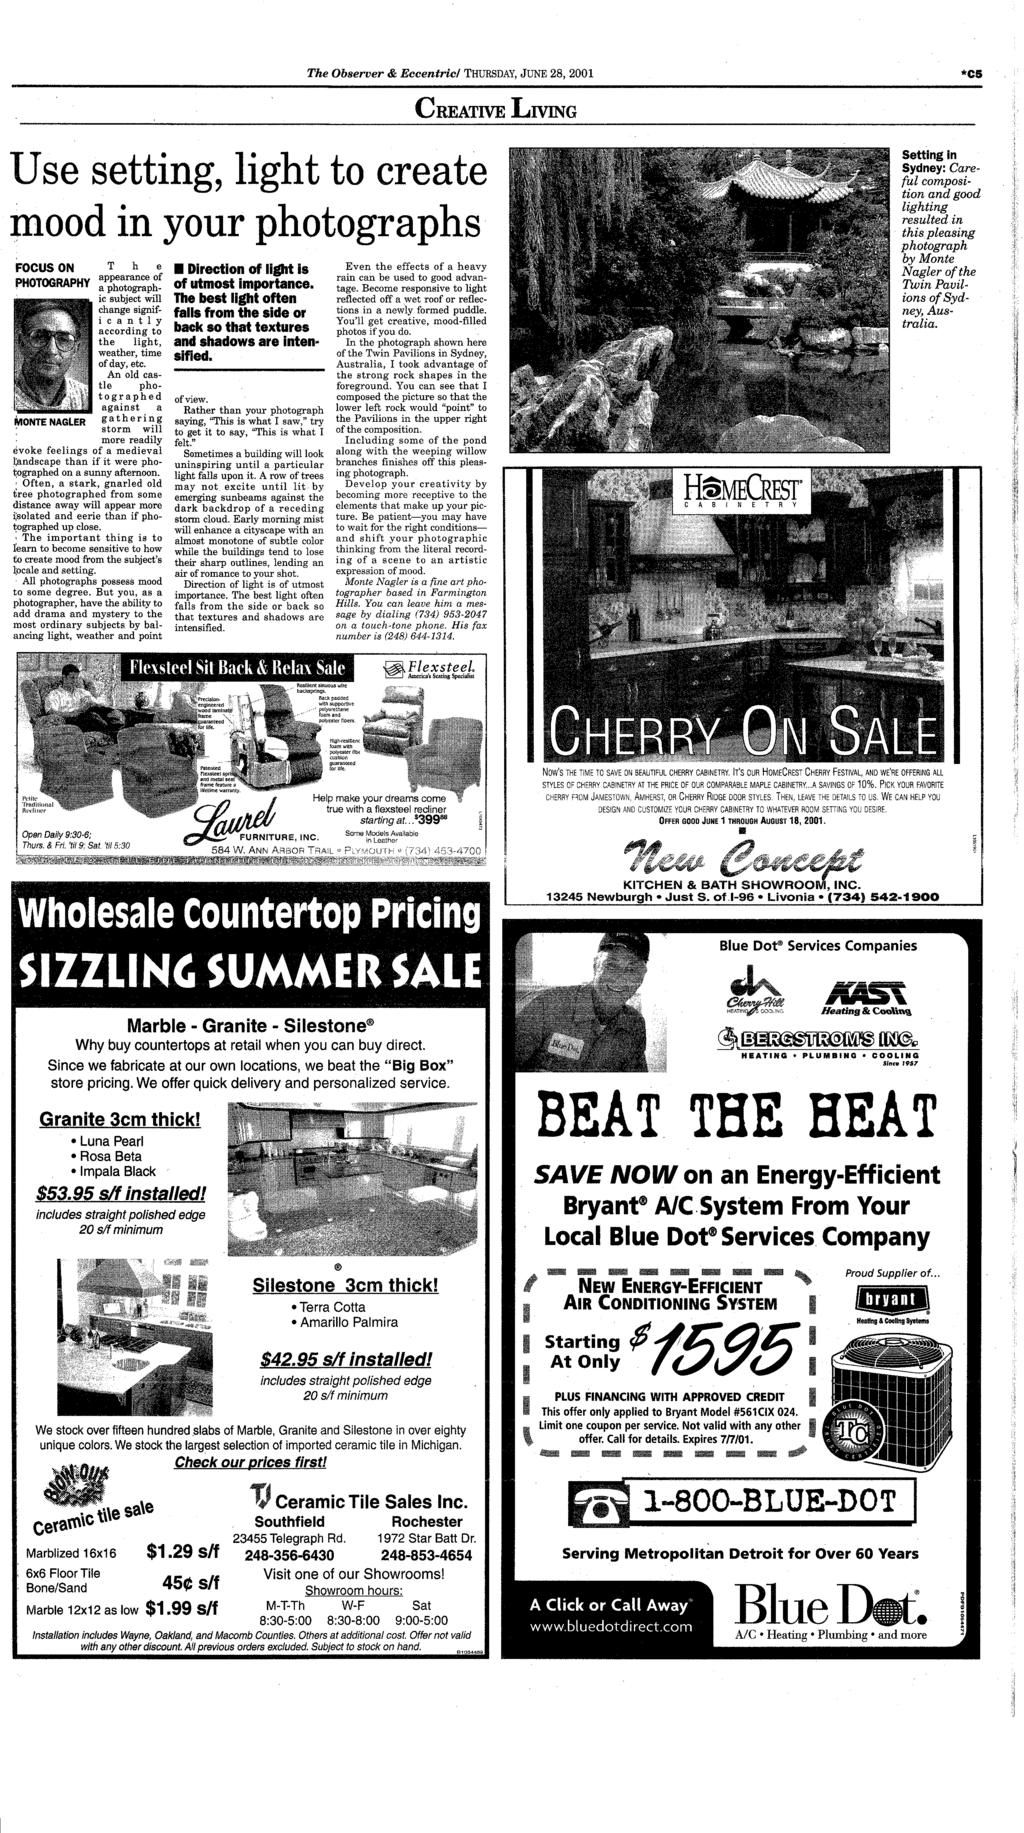 Canton dbsmrc your hometown newspaper serving canton for 26 years pdf the observer eccentric thursday june 28 2001 c5 creative living use fandeluxe Gallery